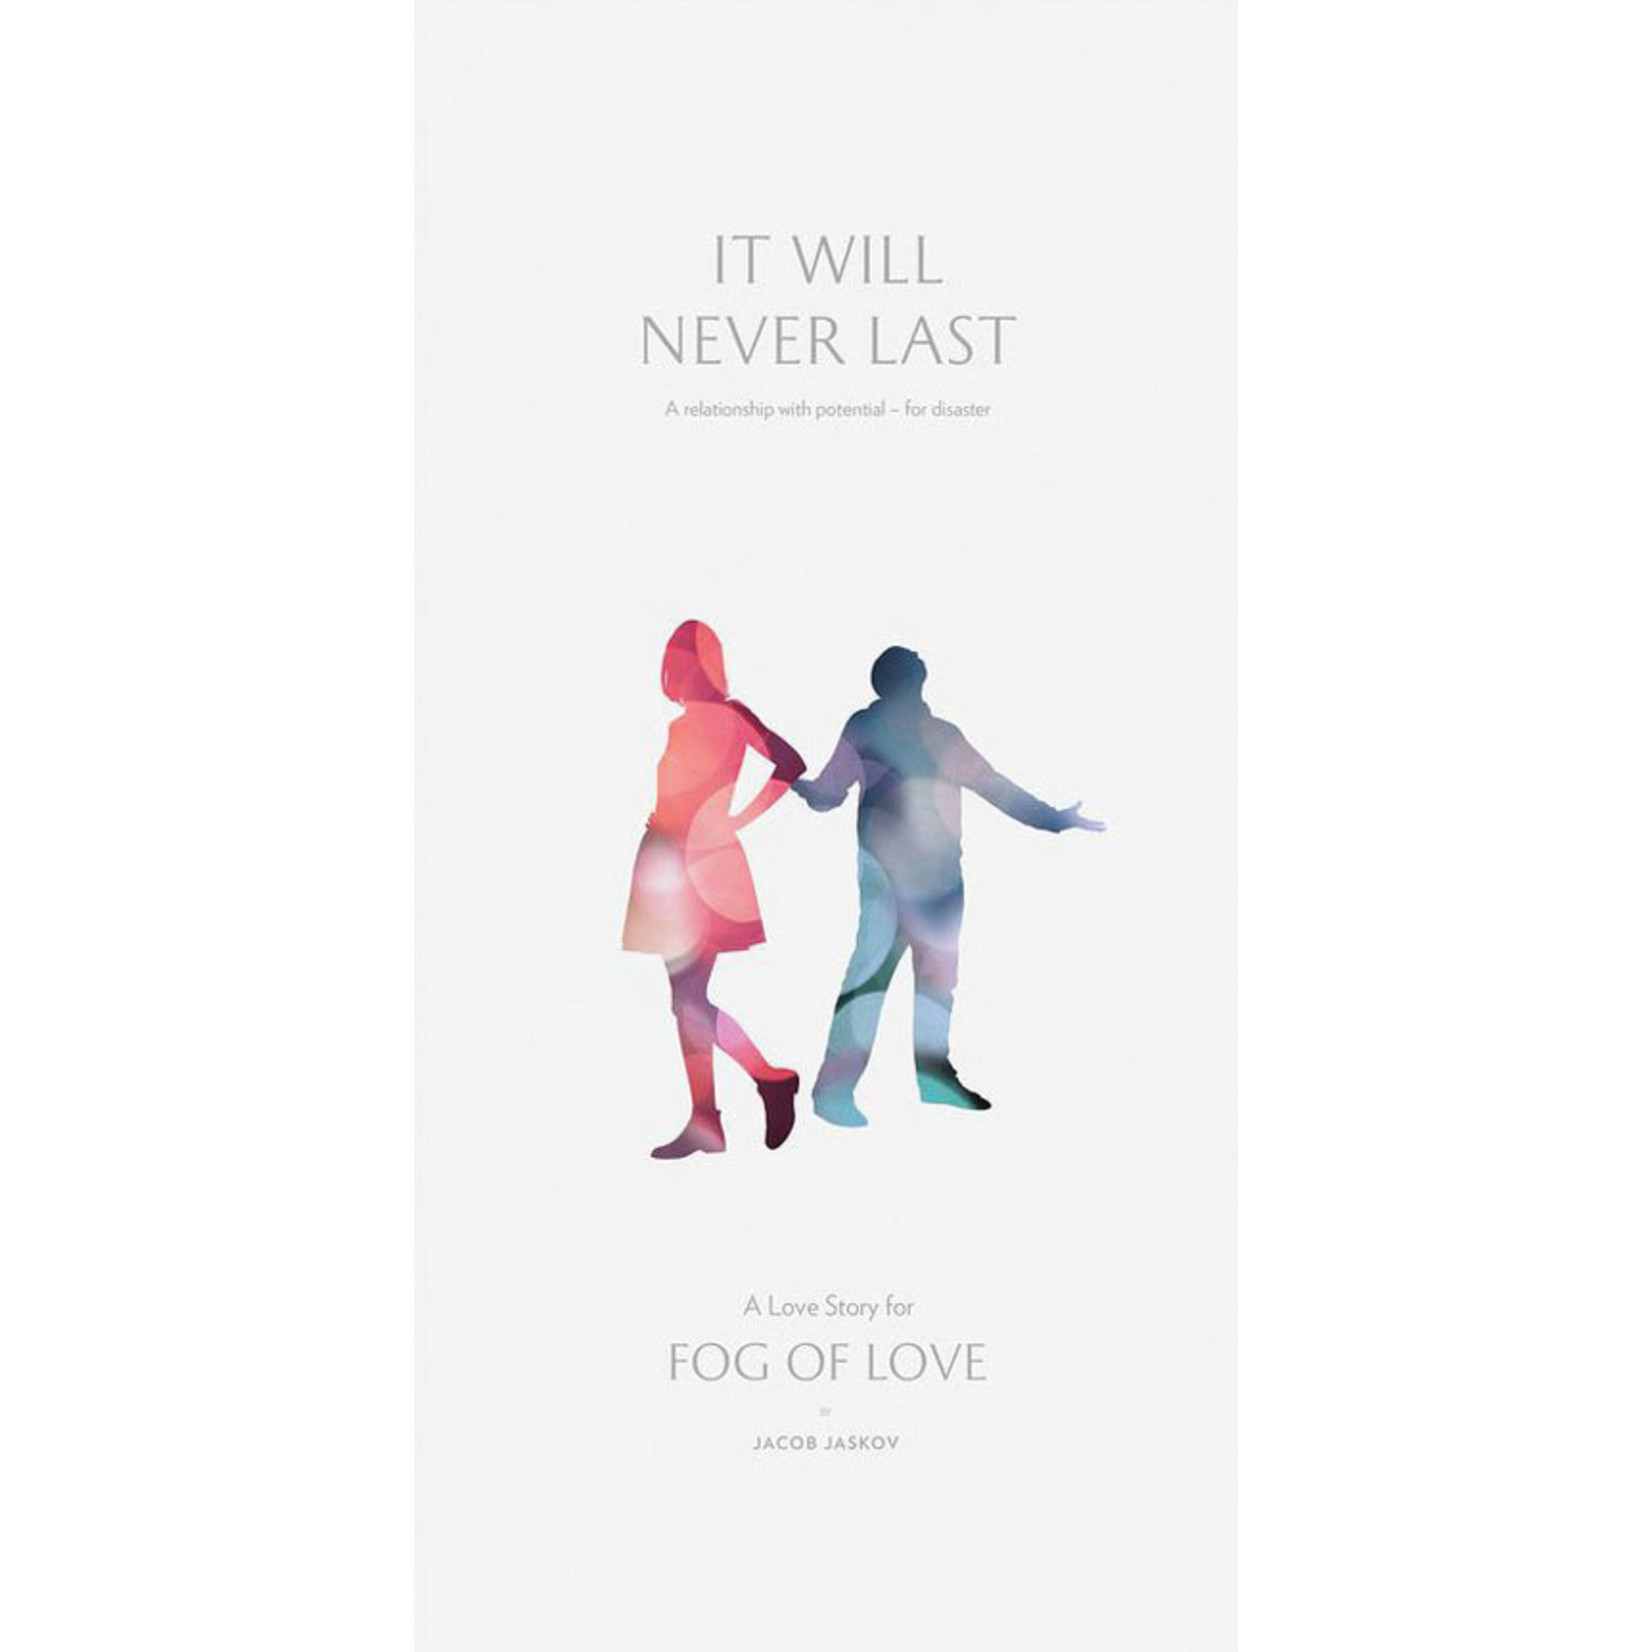 Fog of Love: It Will Never Last Expansion